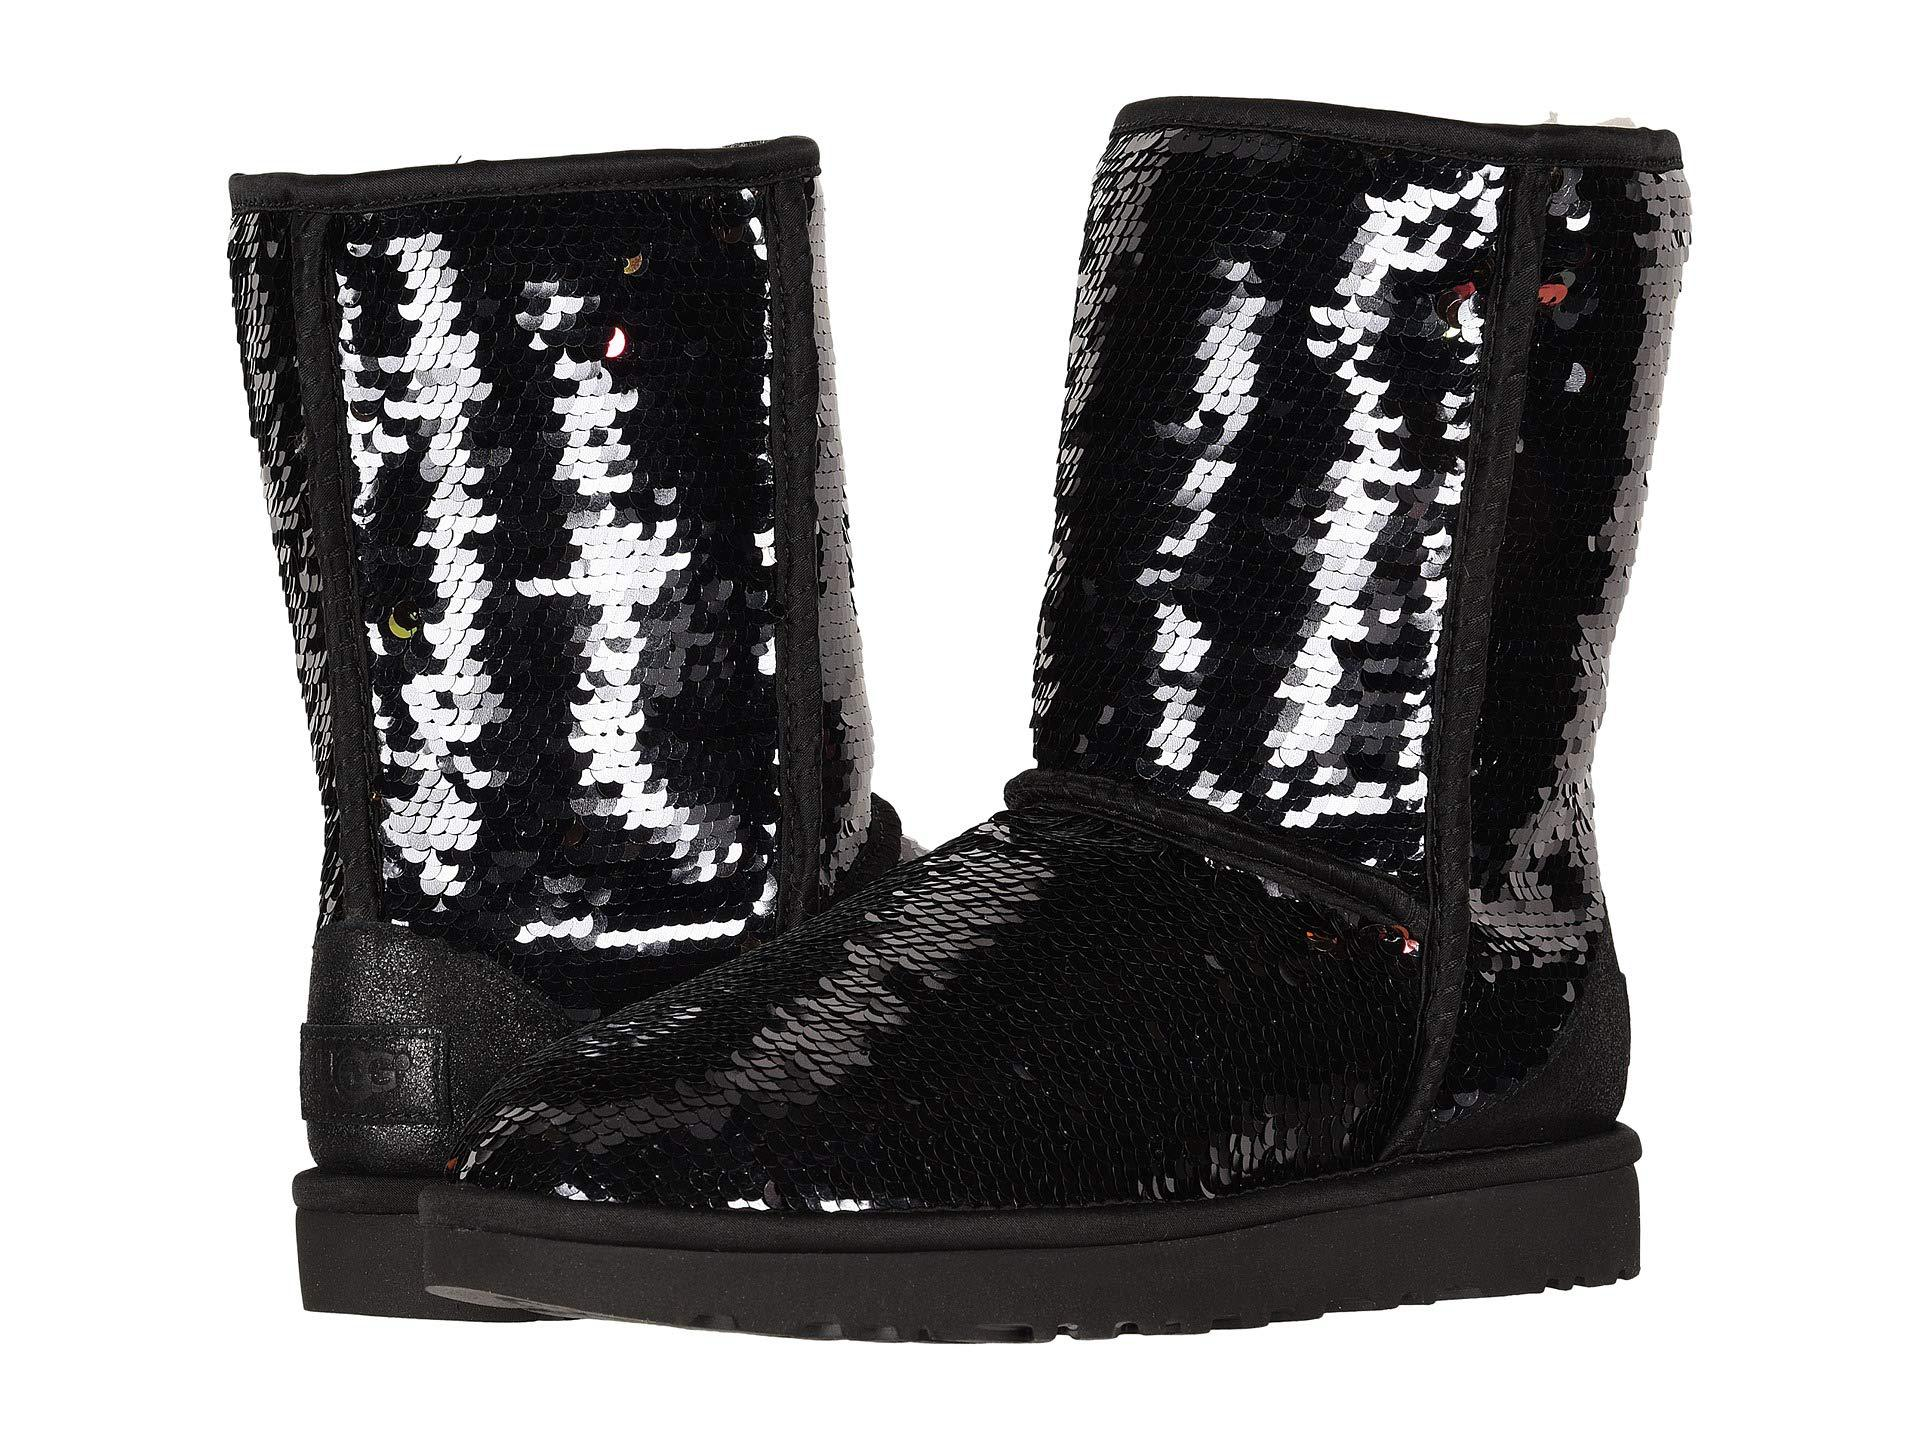 9c8b9c83ee3 UGG Classic Short Sequin (black) Women's Pull-on Boots - Lyst